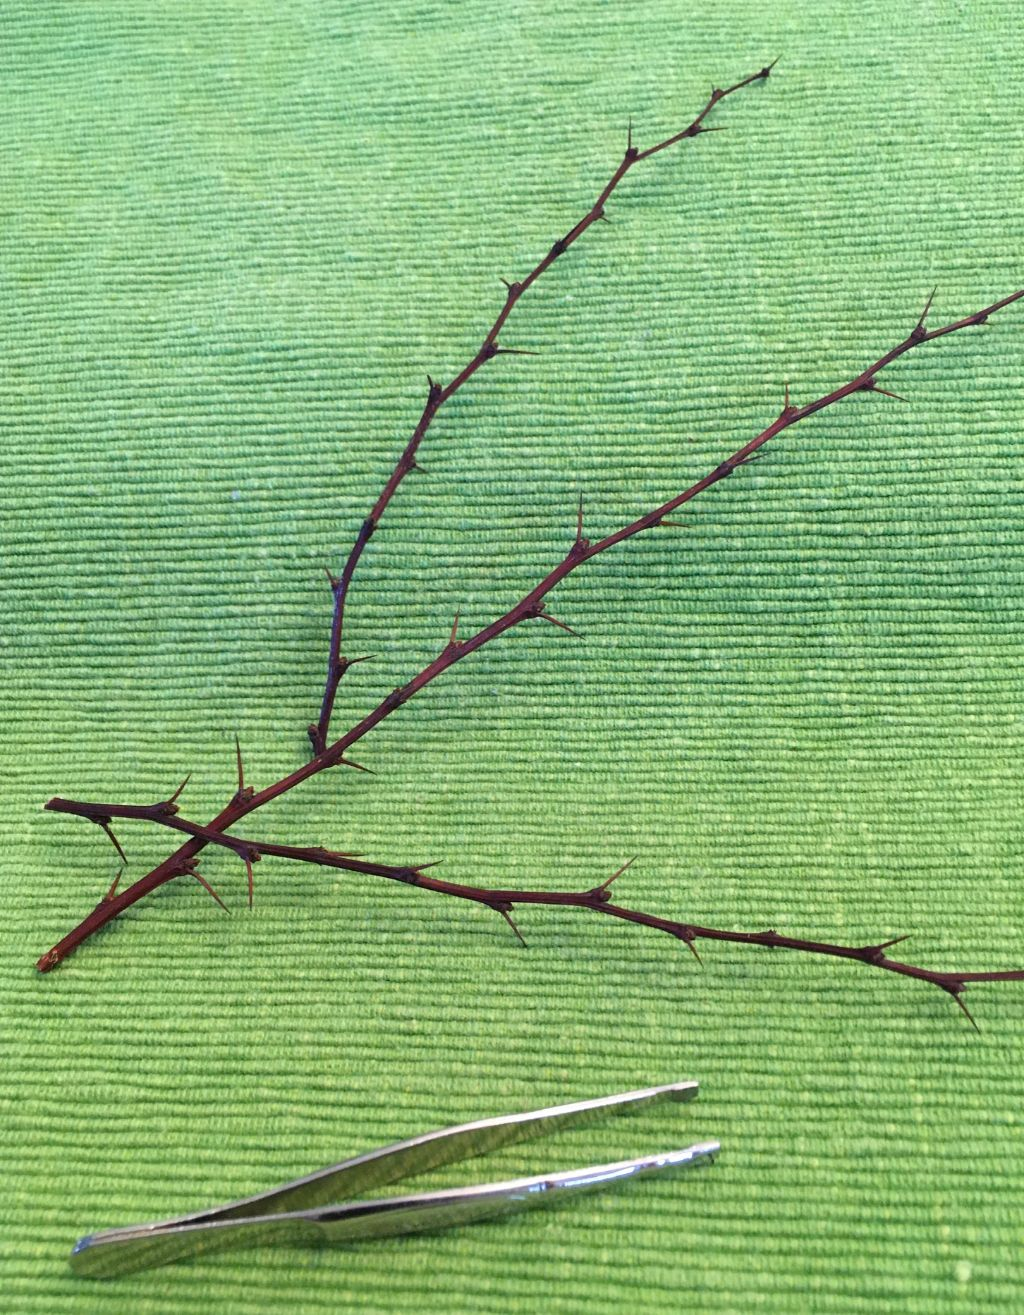 Three thorny barberry bush twigs and a tweezer on a green background